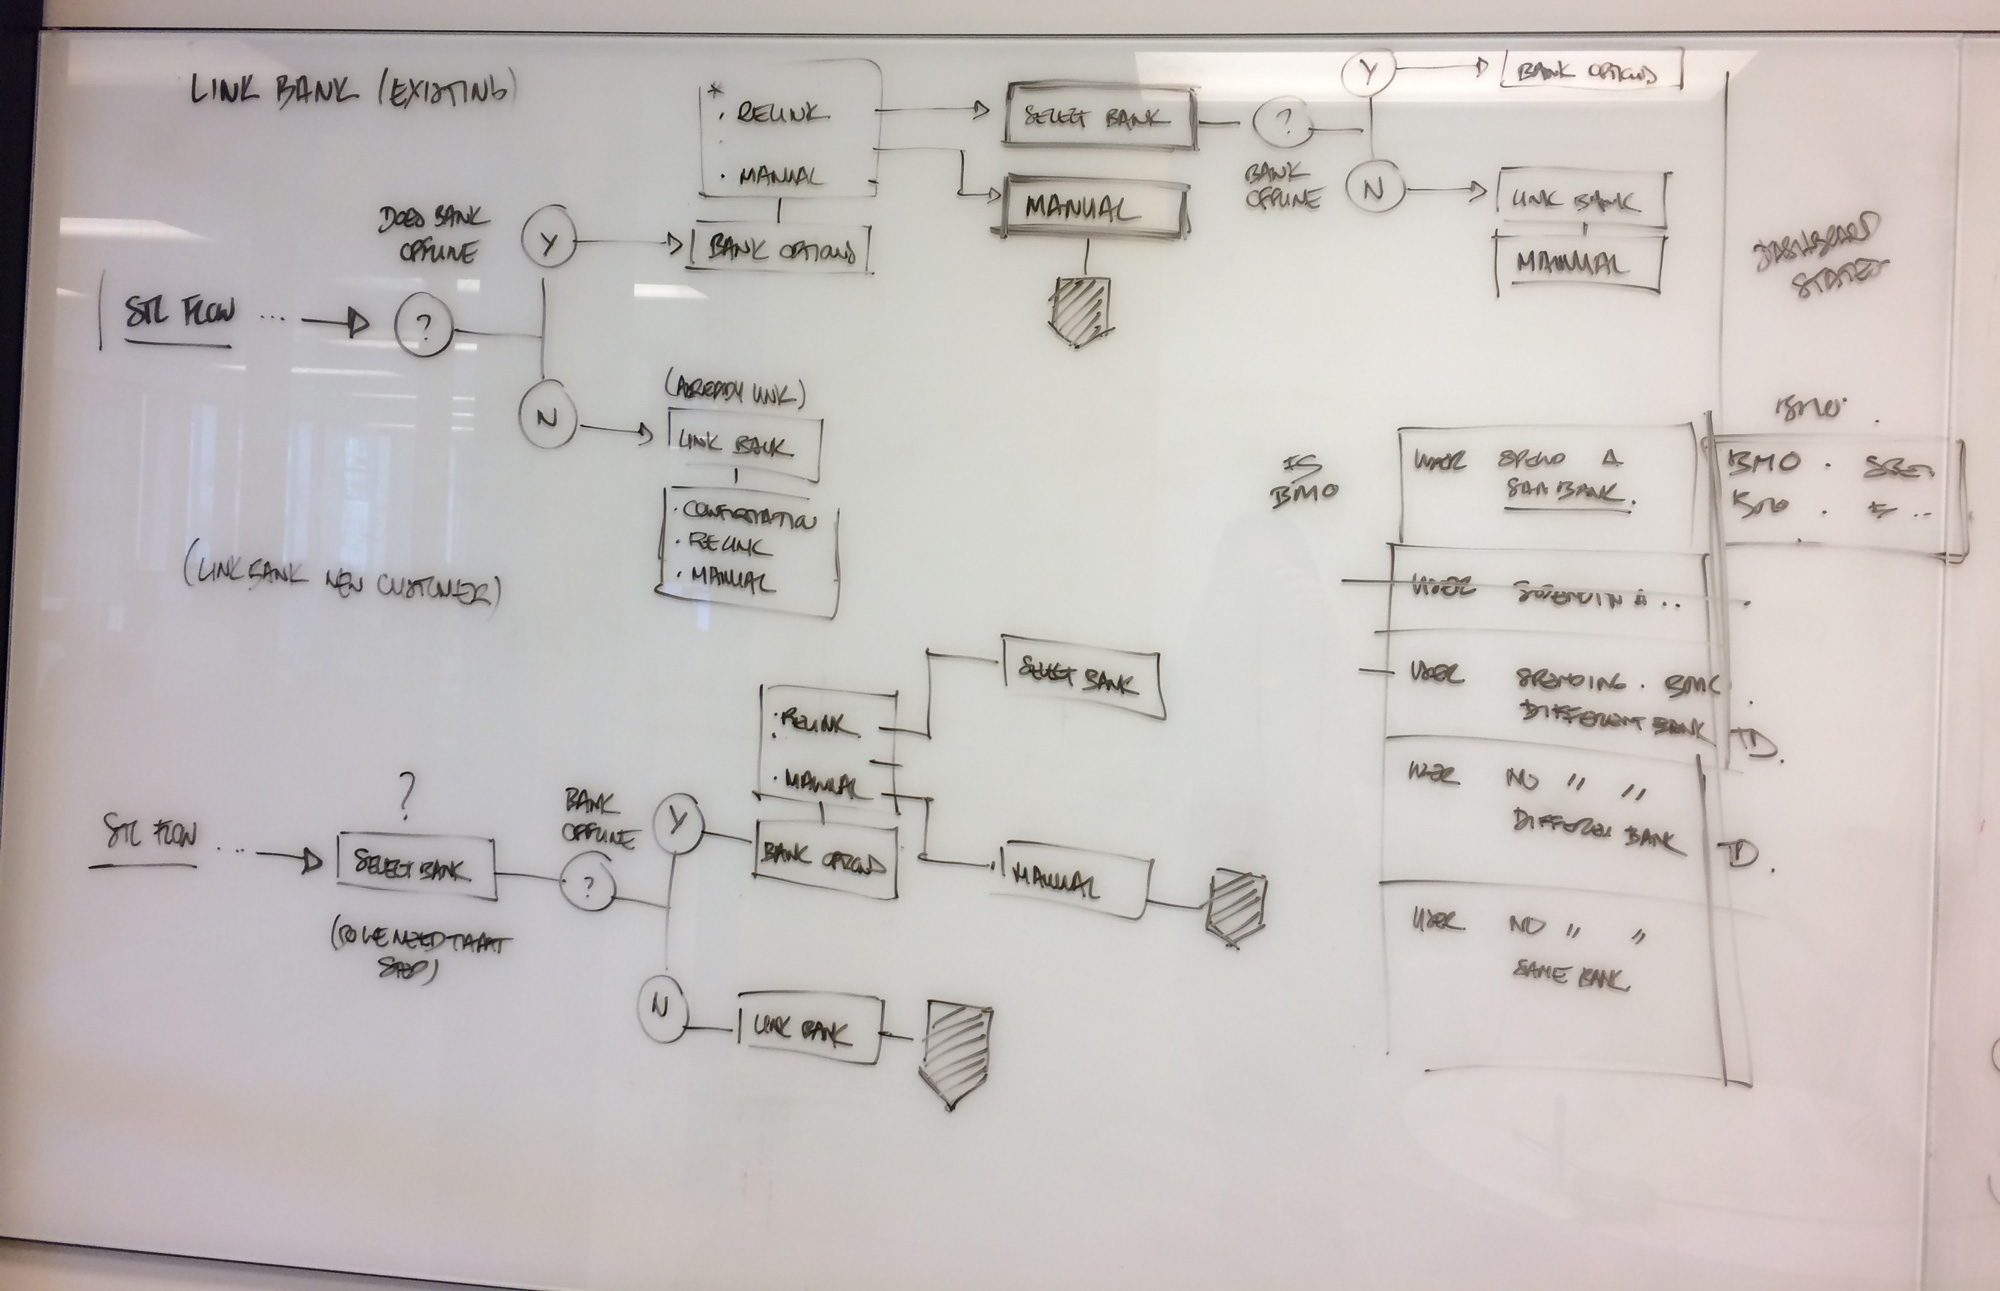 First ideas of user flow for creating a Spending Account